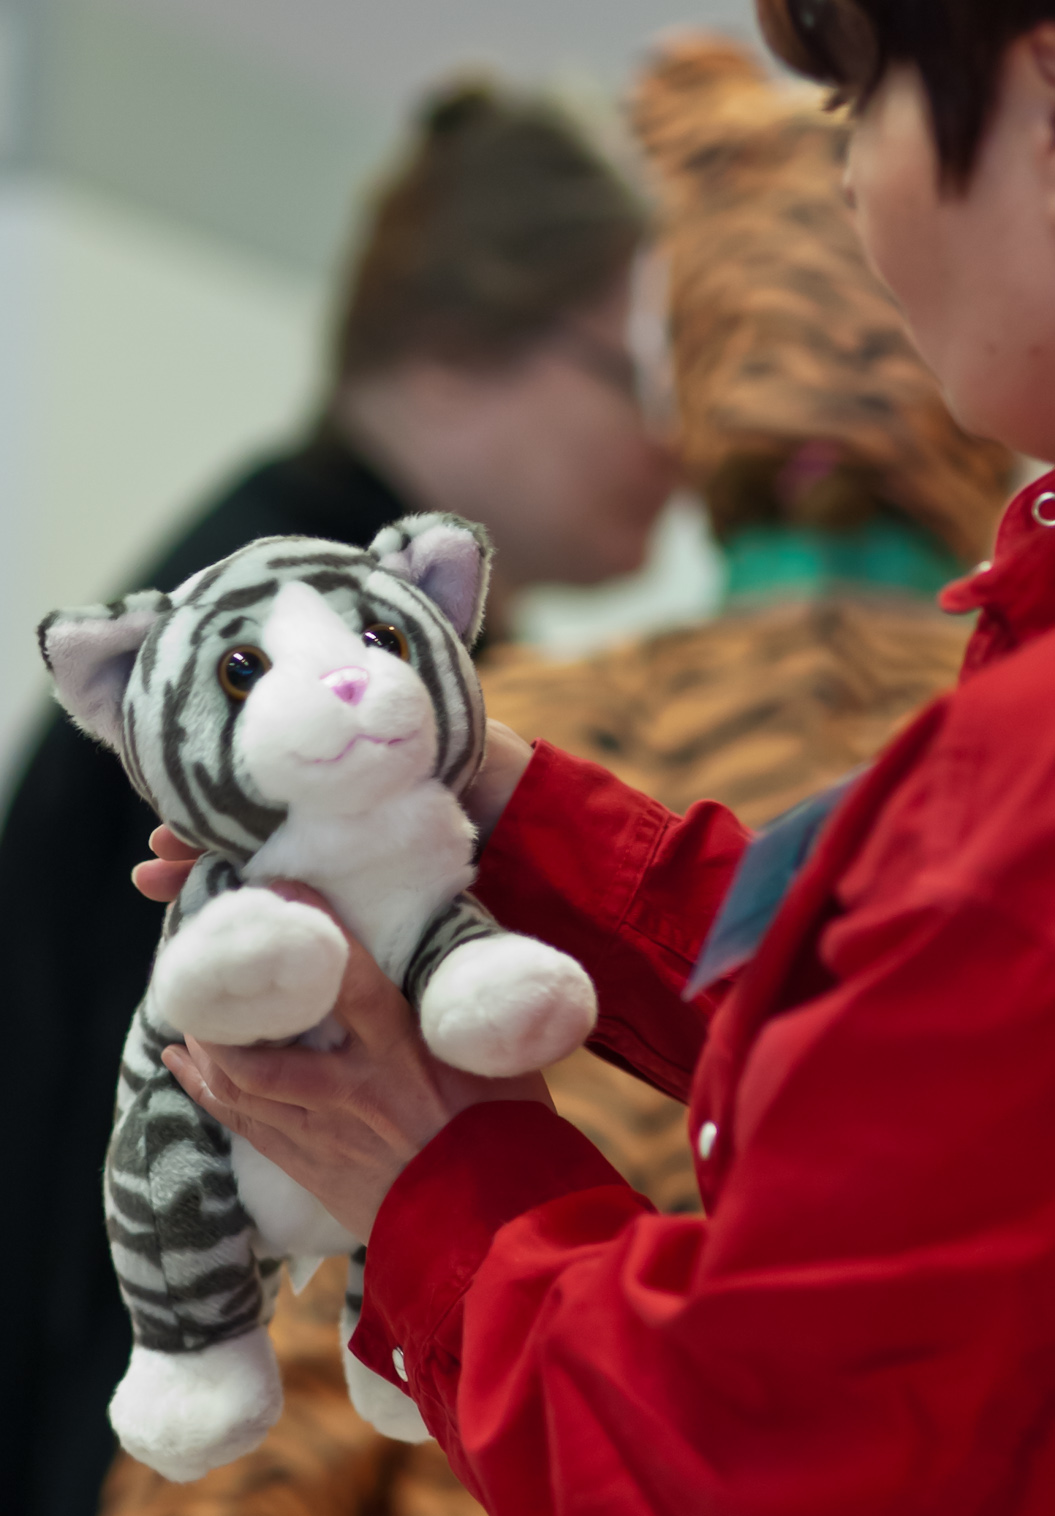 the toy cat contest, photo 191030, 2012-03-17